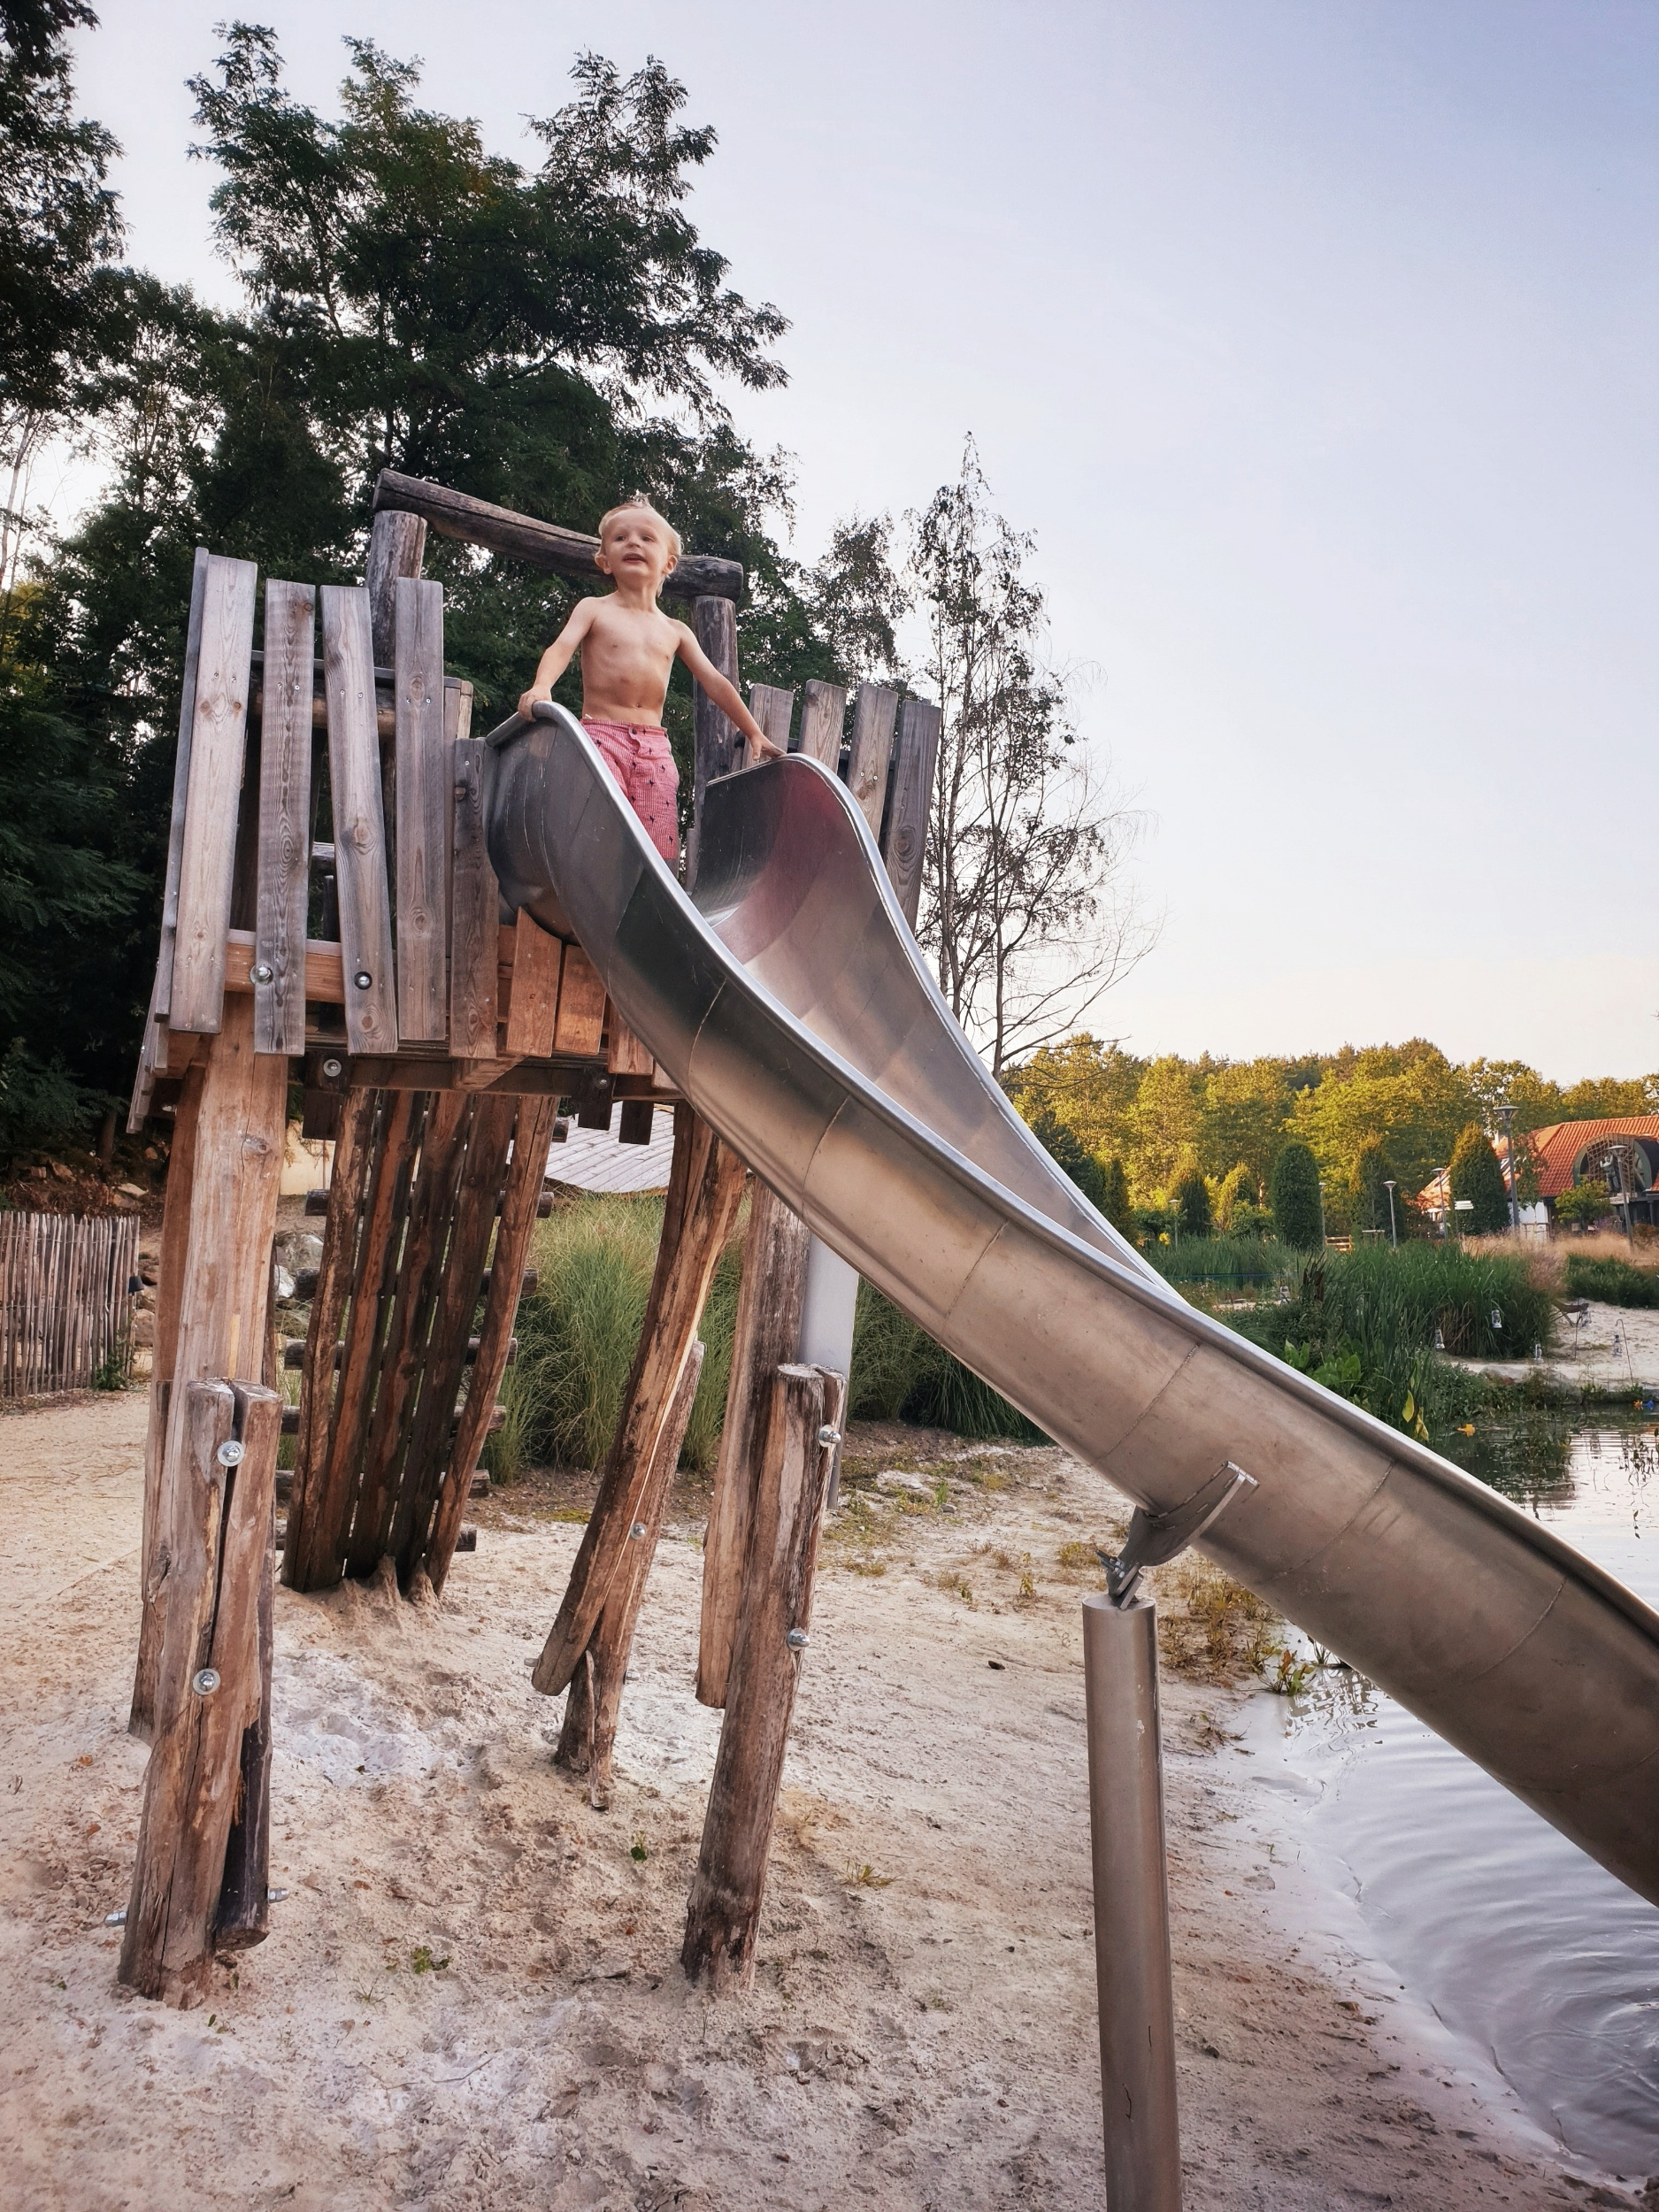 This water slide provided hours of fun